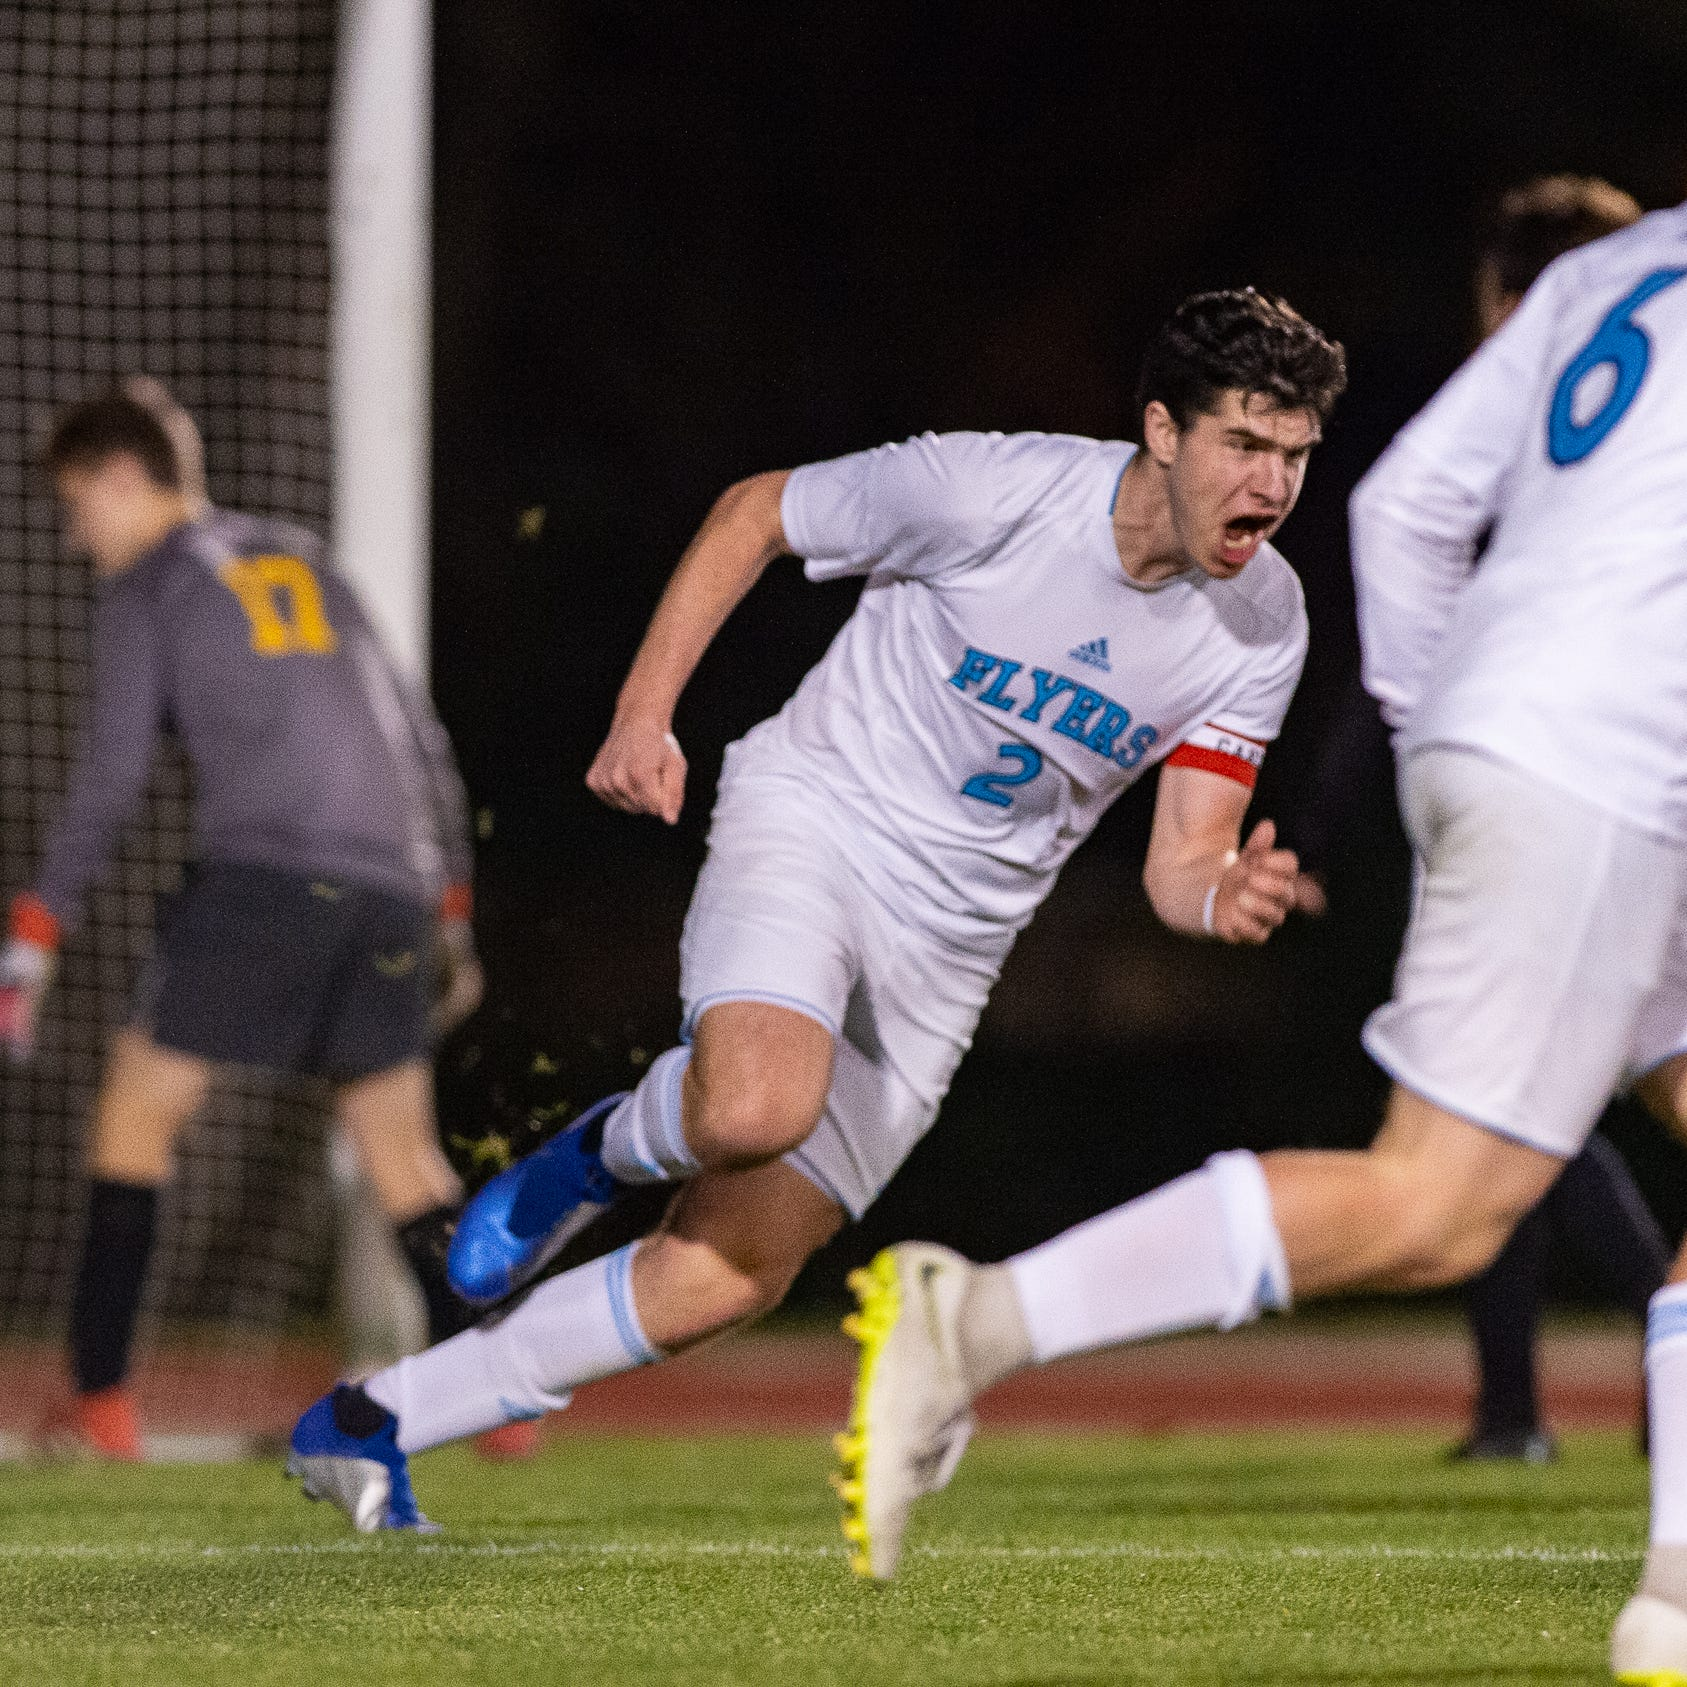 Wild ride in soccer title game symbolic of Loyola's season